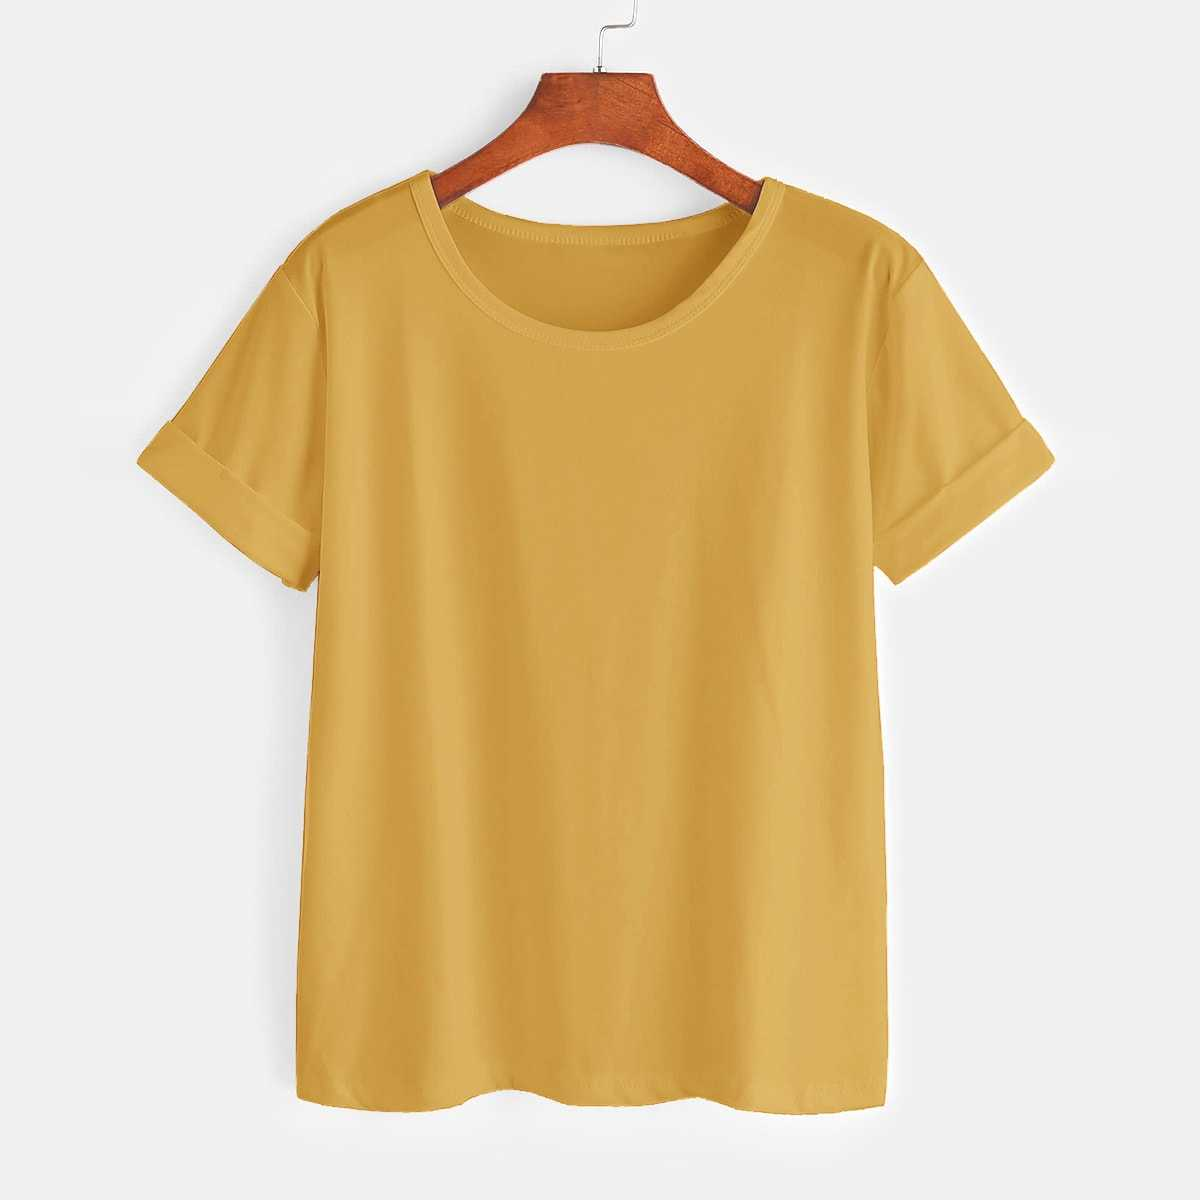 Rolled Cuff Basic Tee in Yellow by ROMWE on GOOFASH